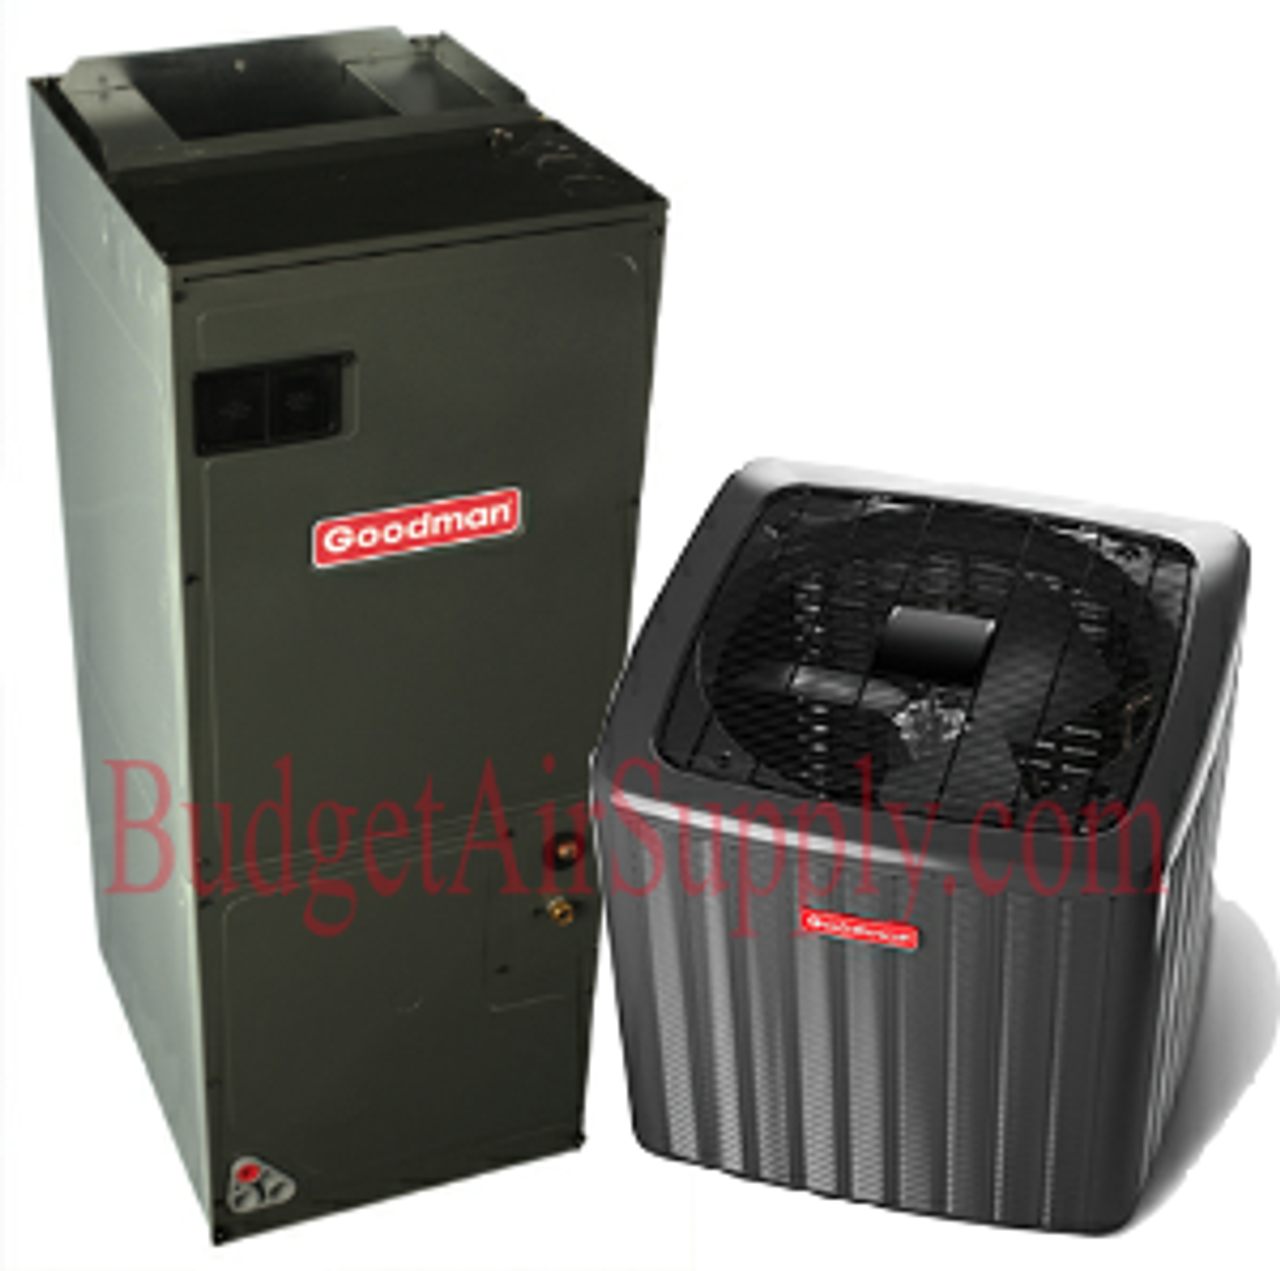 Goodman 1 5 ton(1 1/2) Ton 14 seer Complete A/C System